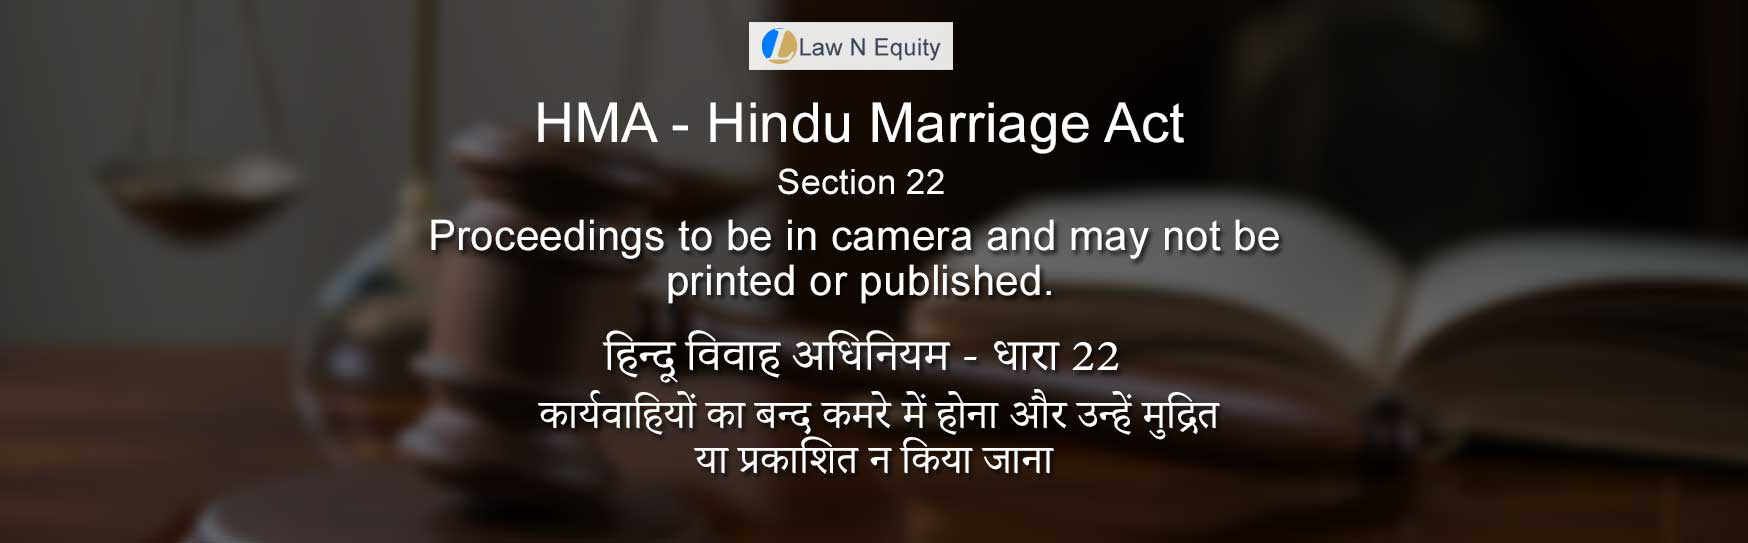 Hindu Marriage Act(HMA) Section 22